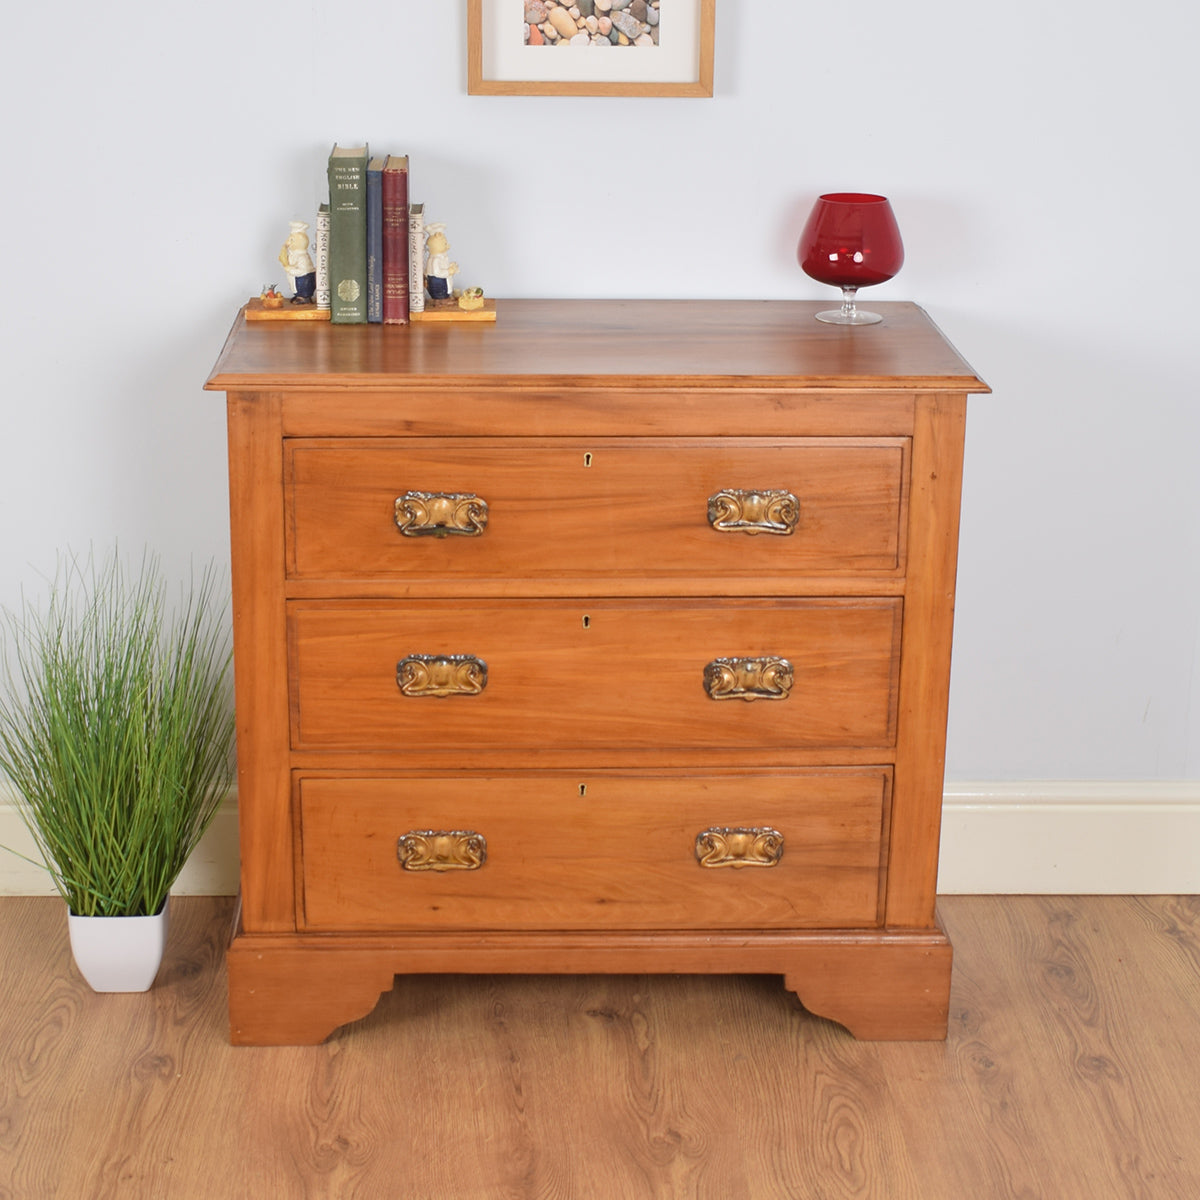 Vintage Oak Chest of Drawers